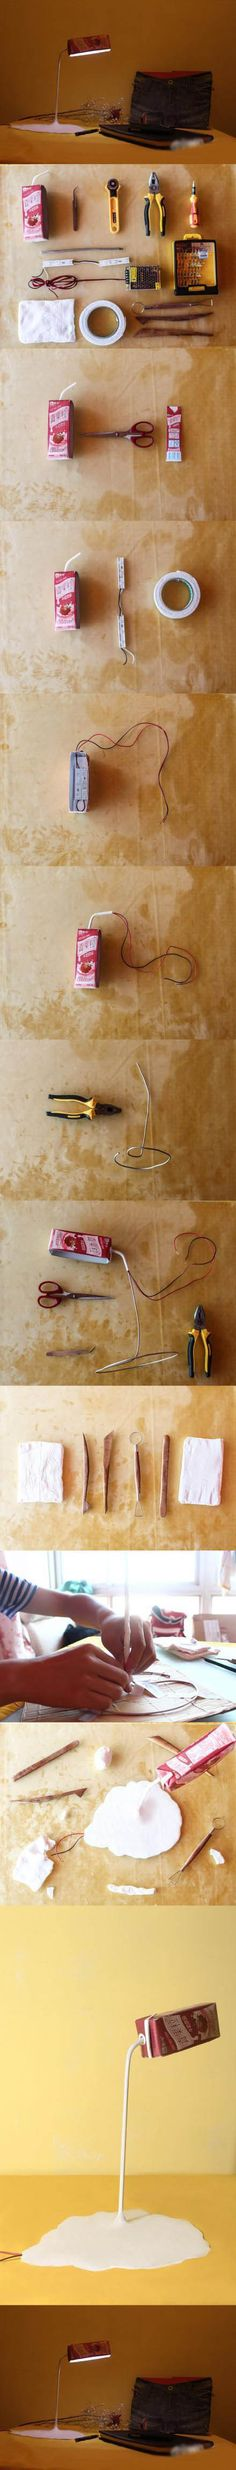 Diy Cool Lamp | Click to see More DIY & Crafts Tutorials on Our Site.